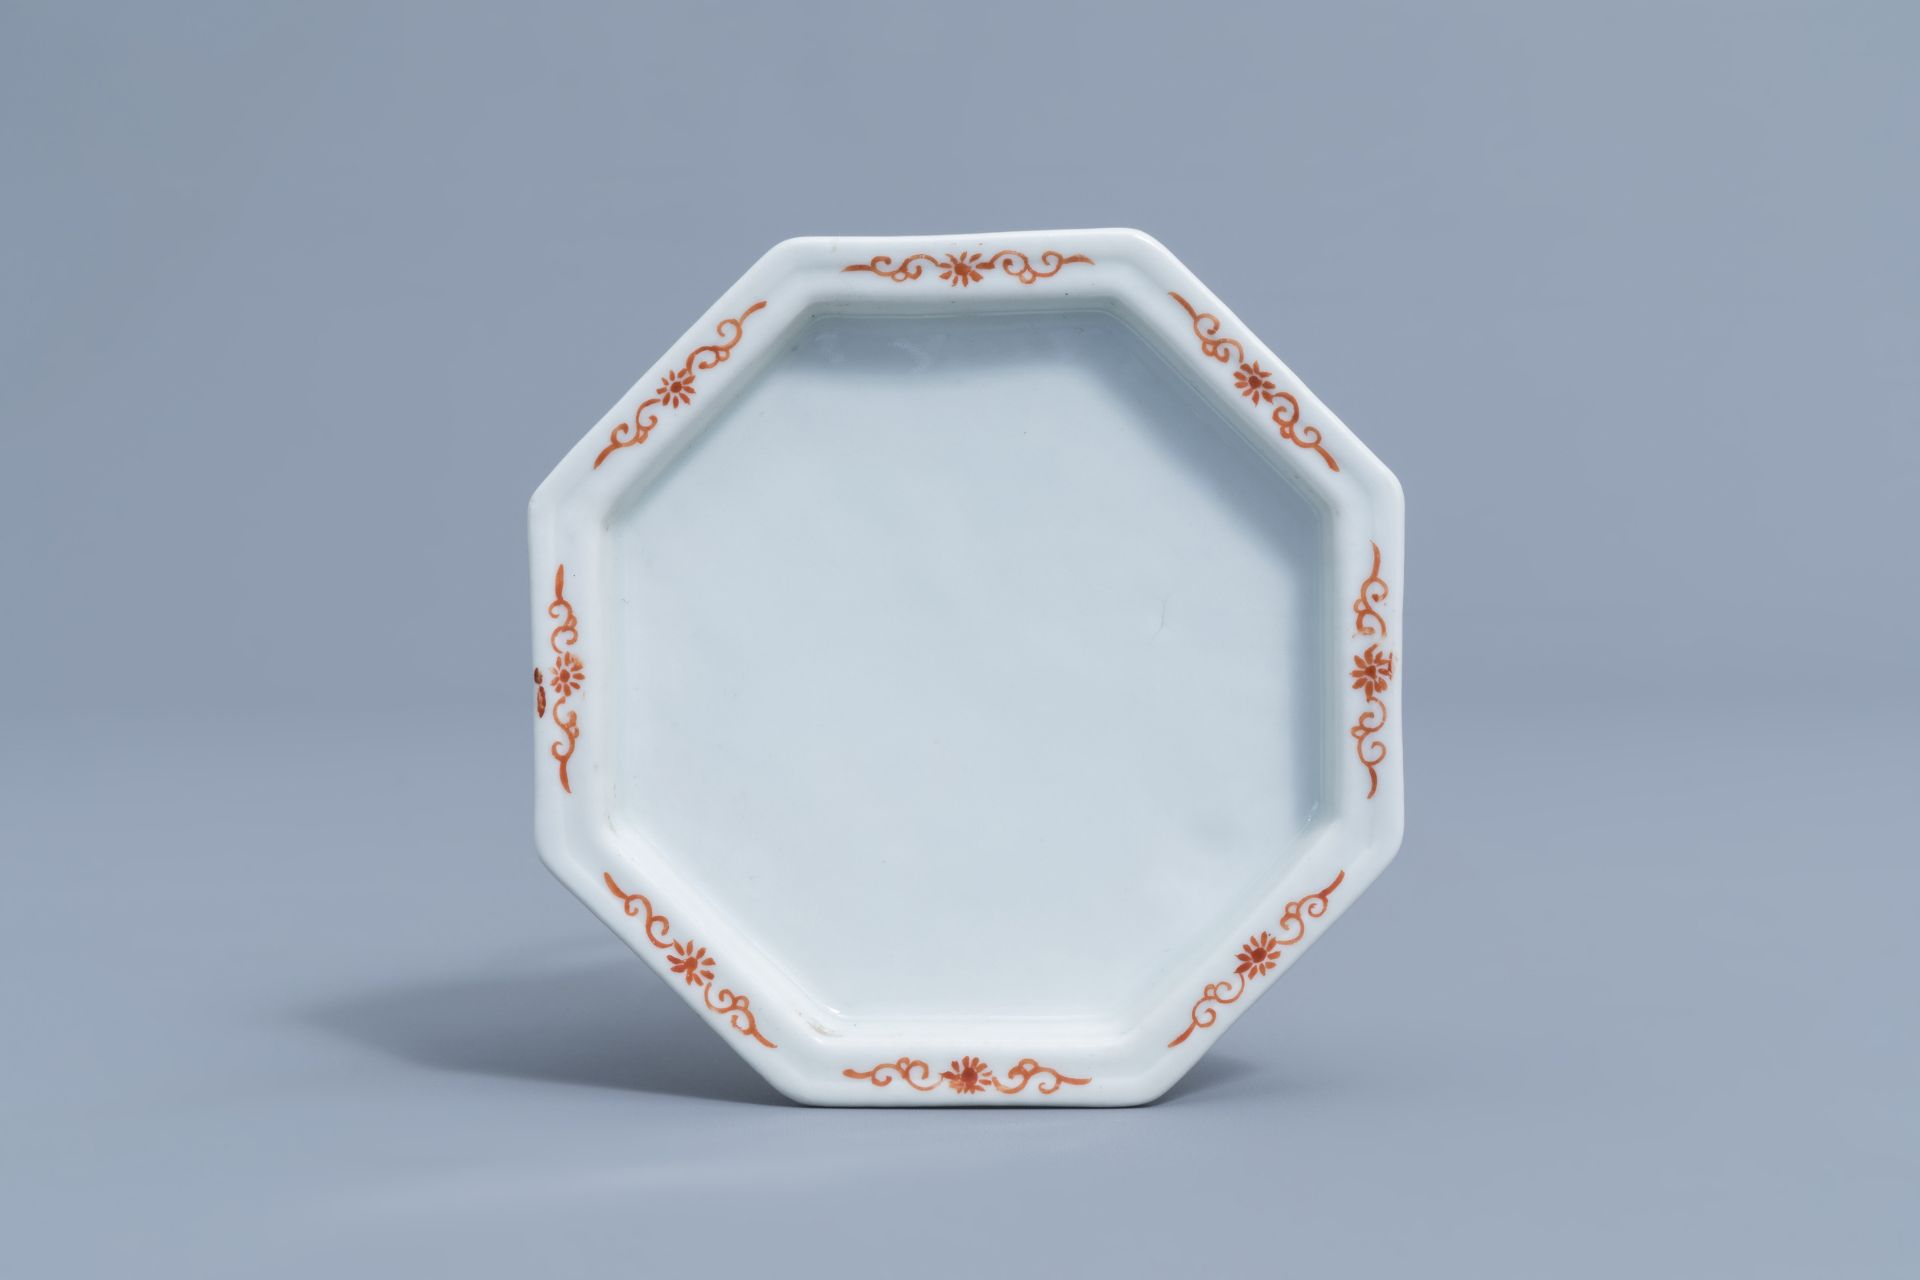 Two Chinese famille rose jardinires and a bowl with floral design, 20th C. - Image 8 of 15